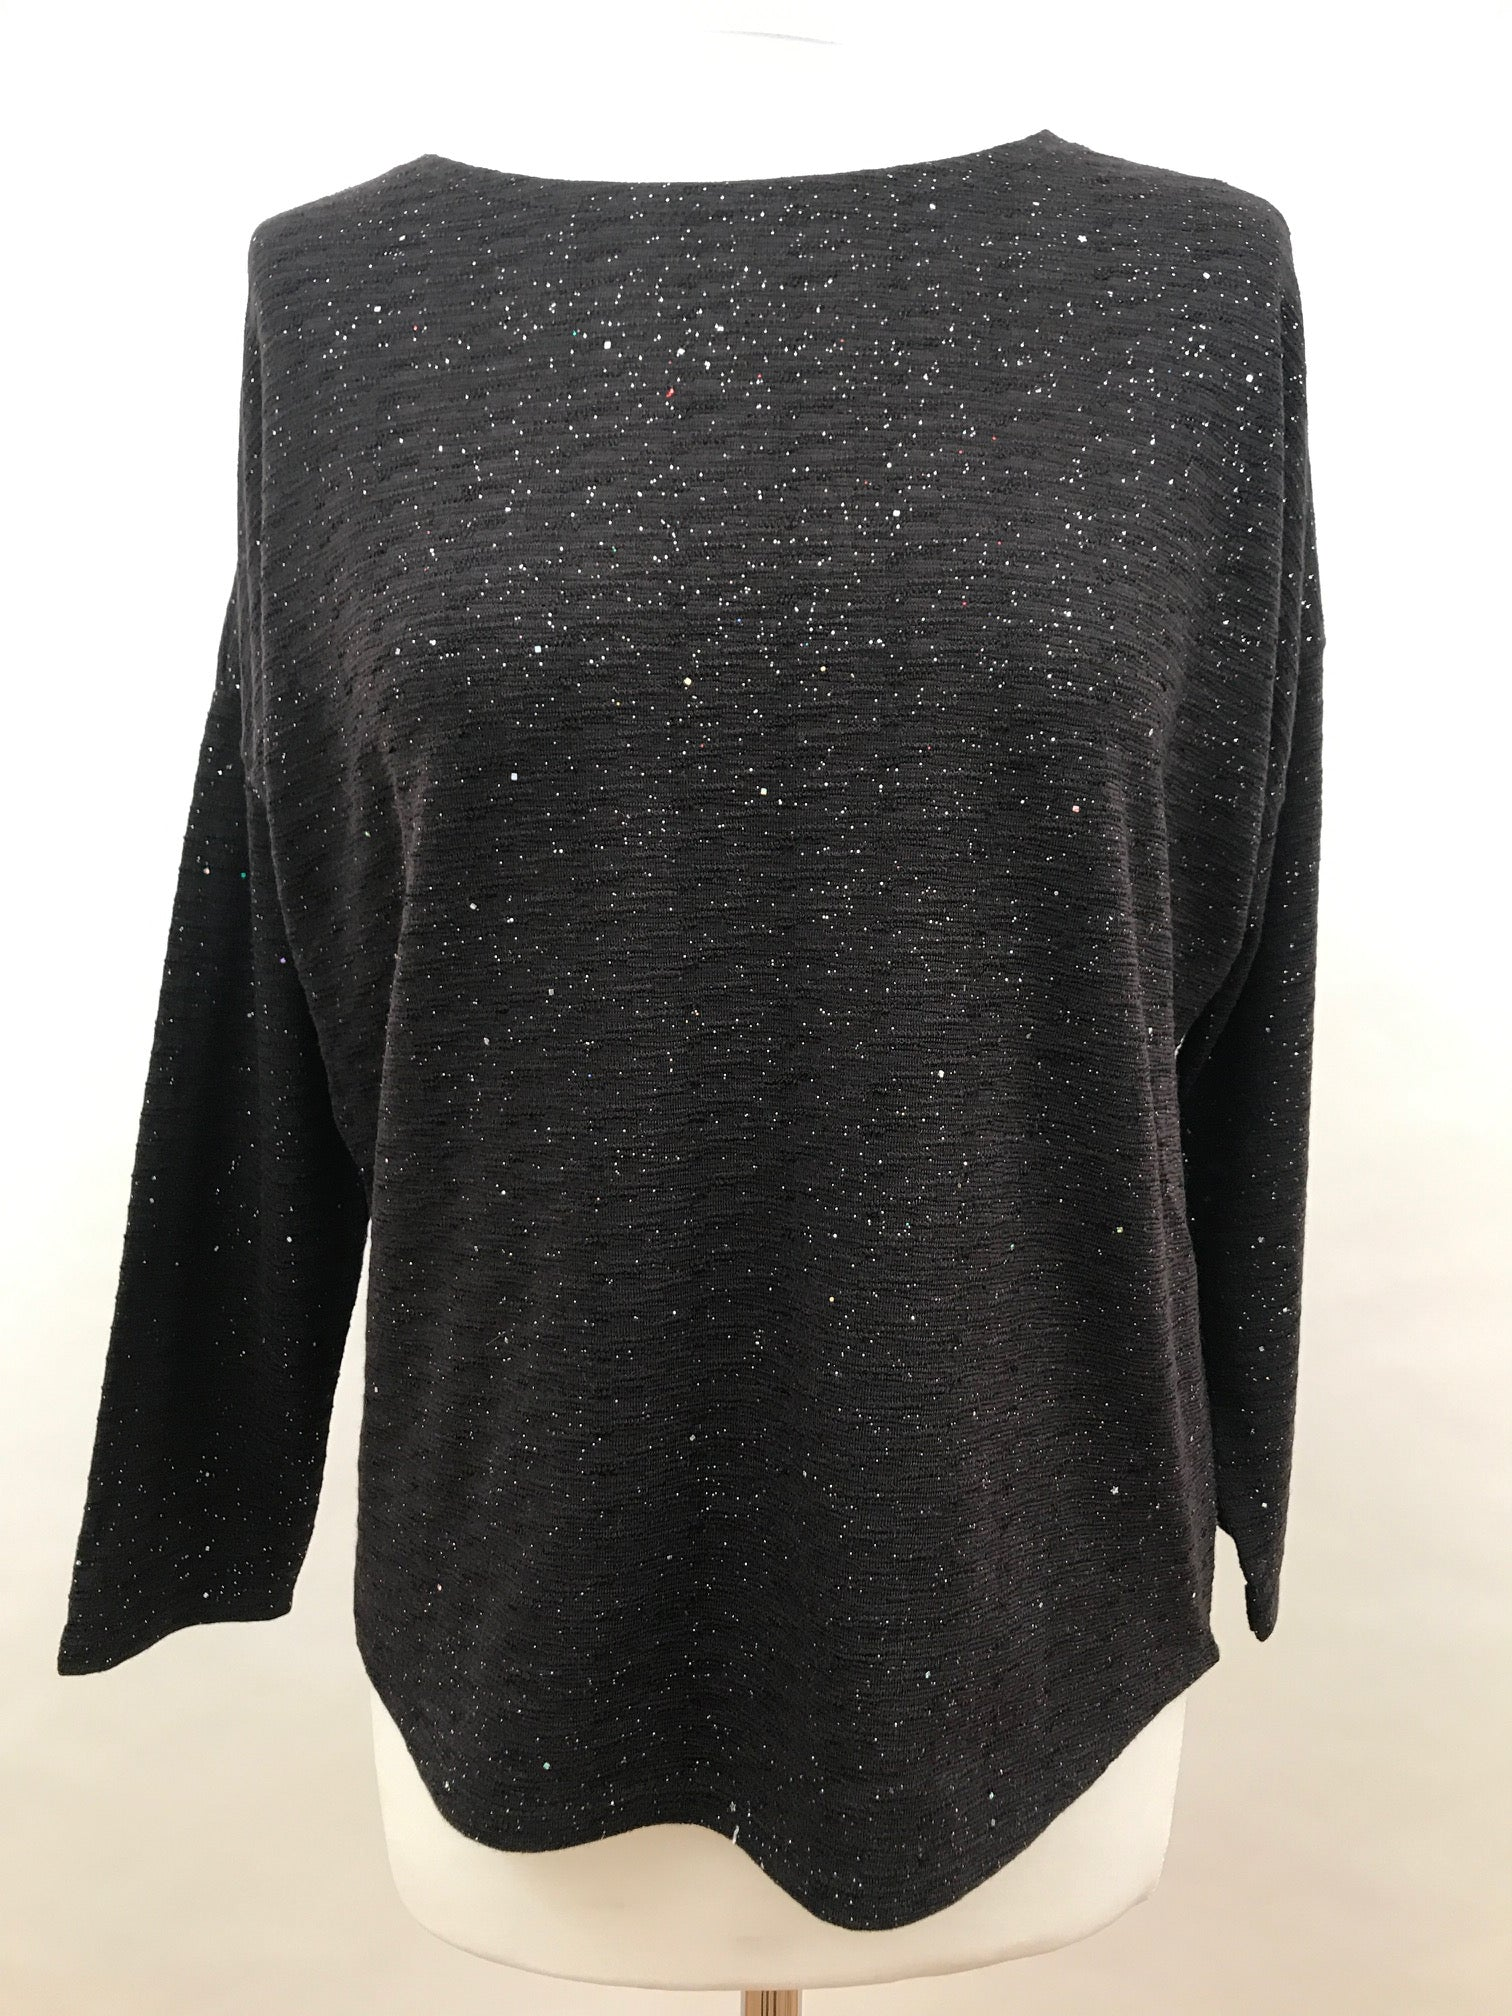 Upper Hip Length - Black with Shiny Sparkles